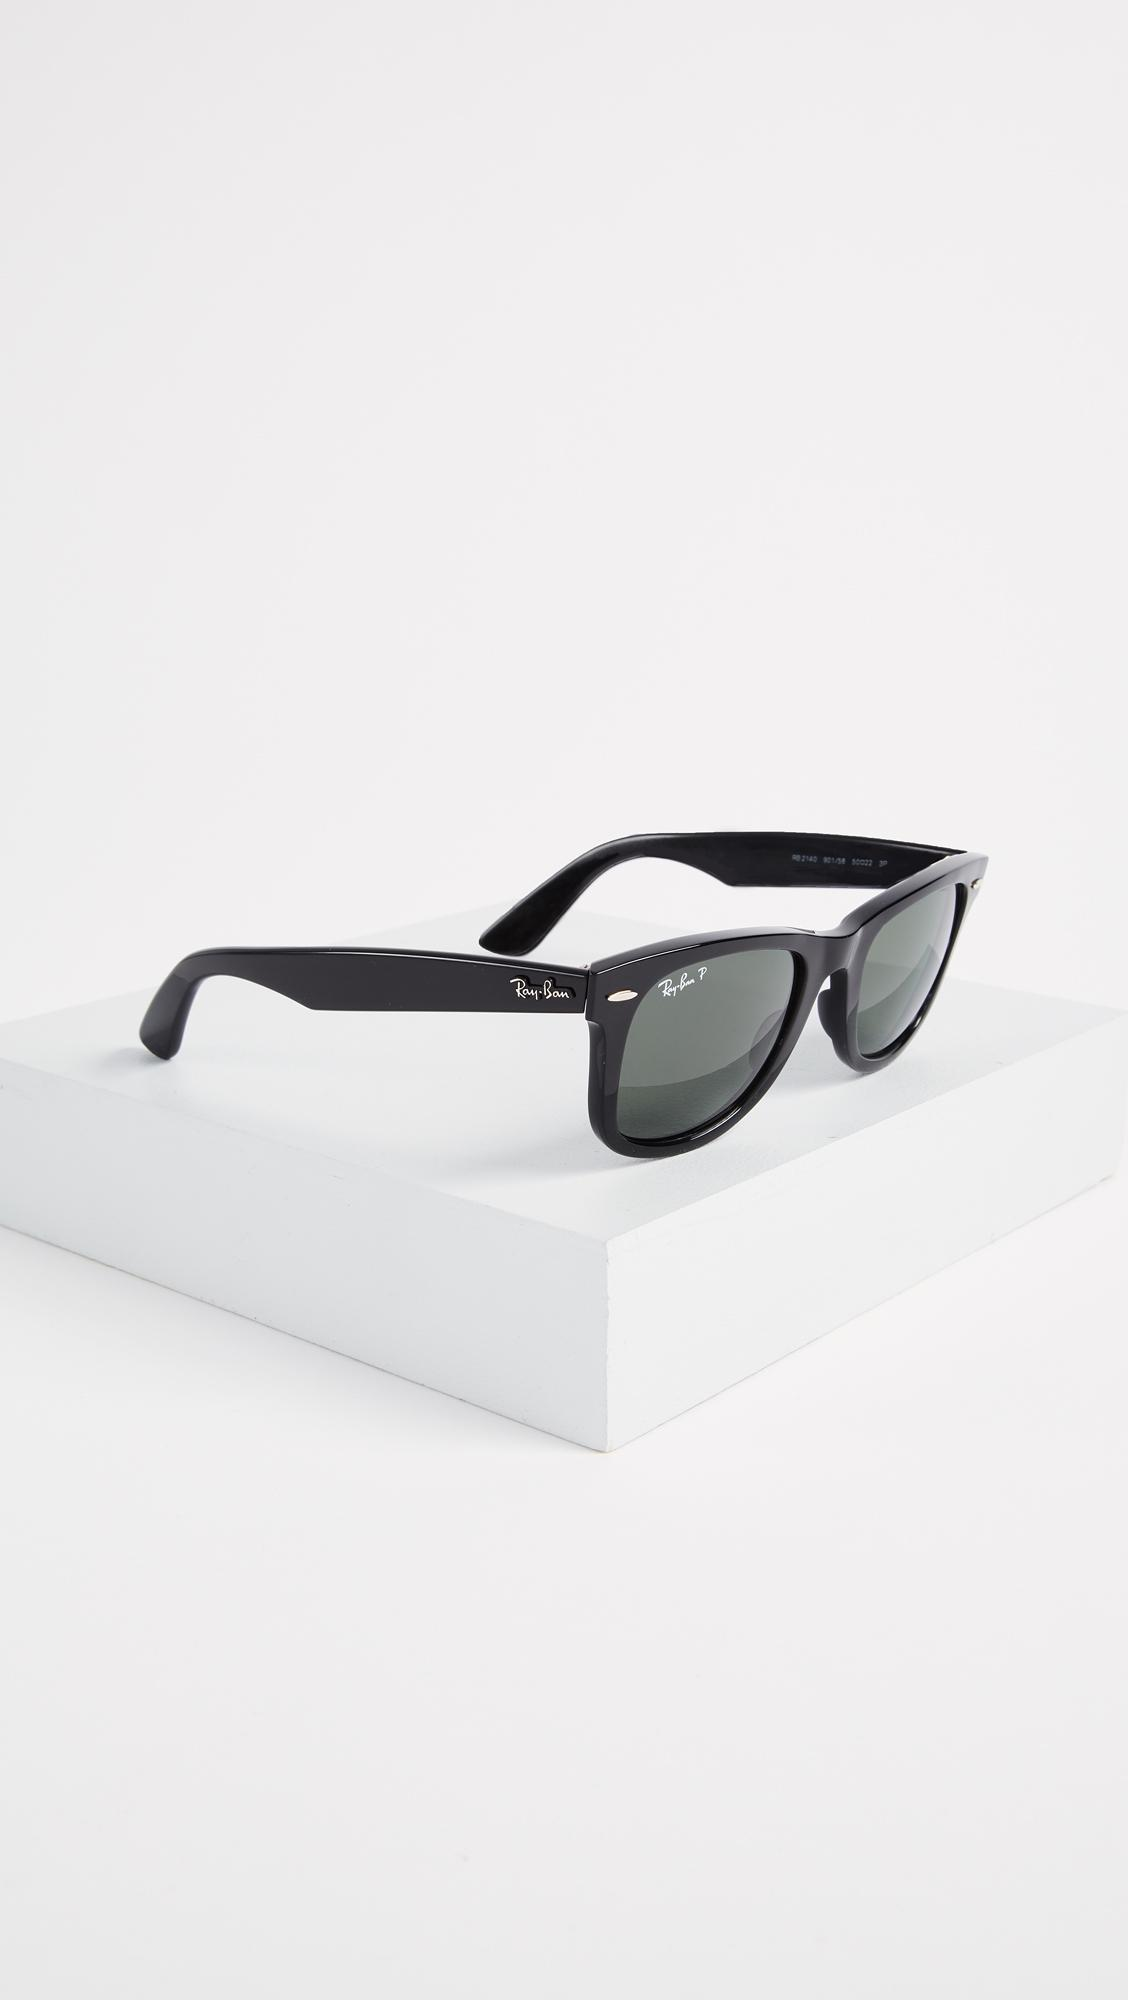 d17c1c1e0a Ray Ban Rb2140 A Original Wayfarer Asian Fit 902 57